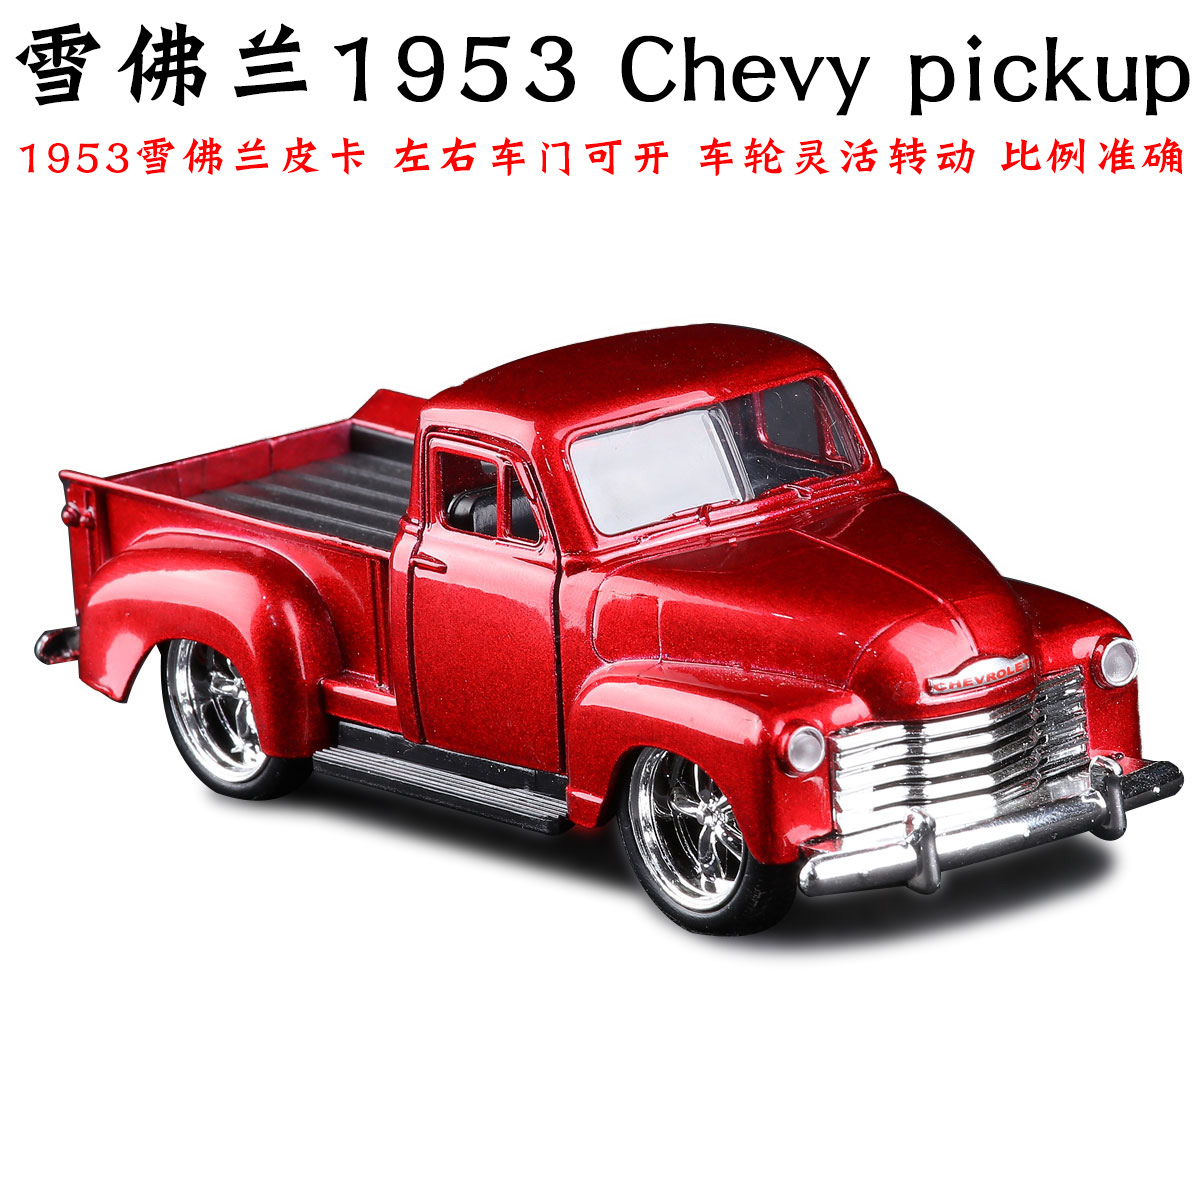 compare prices on chevrolet pickup online shopping buy low price chevrolet pickup at factory. Black Bedroom Furniture Sets. Home Design Ideas